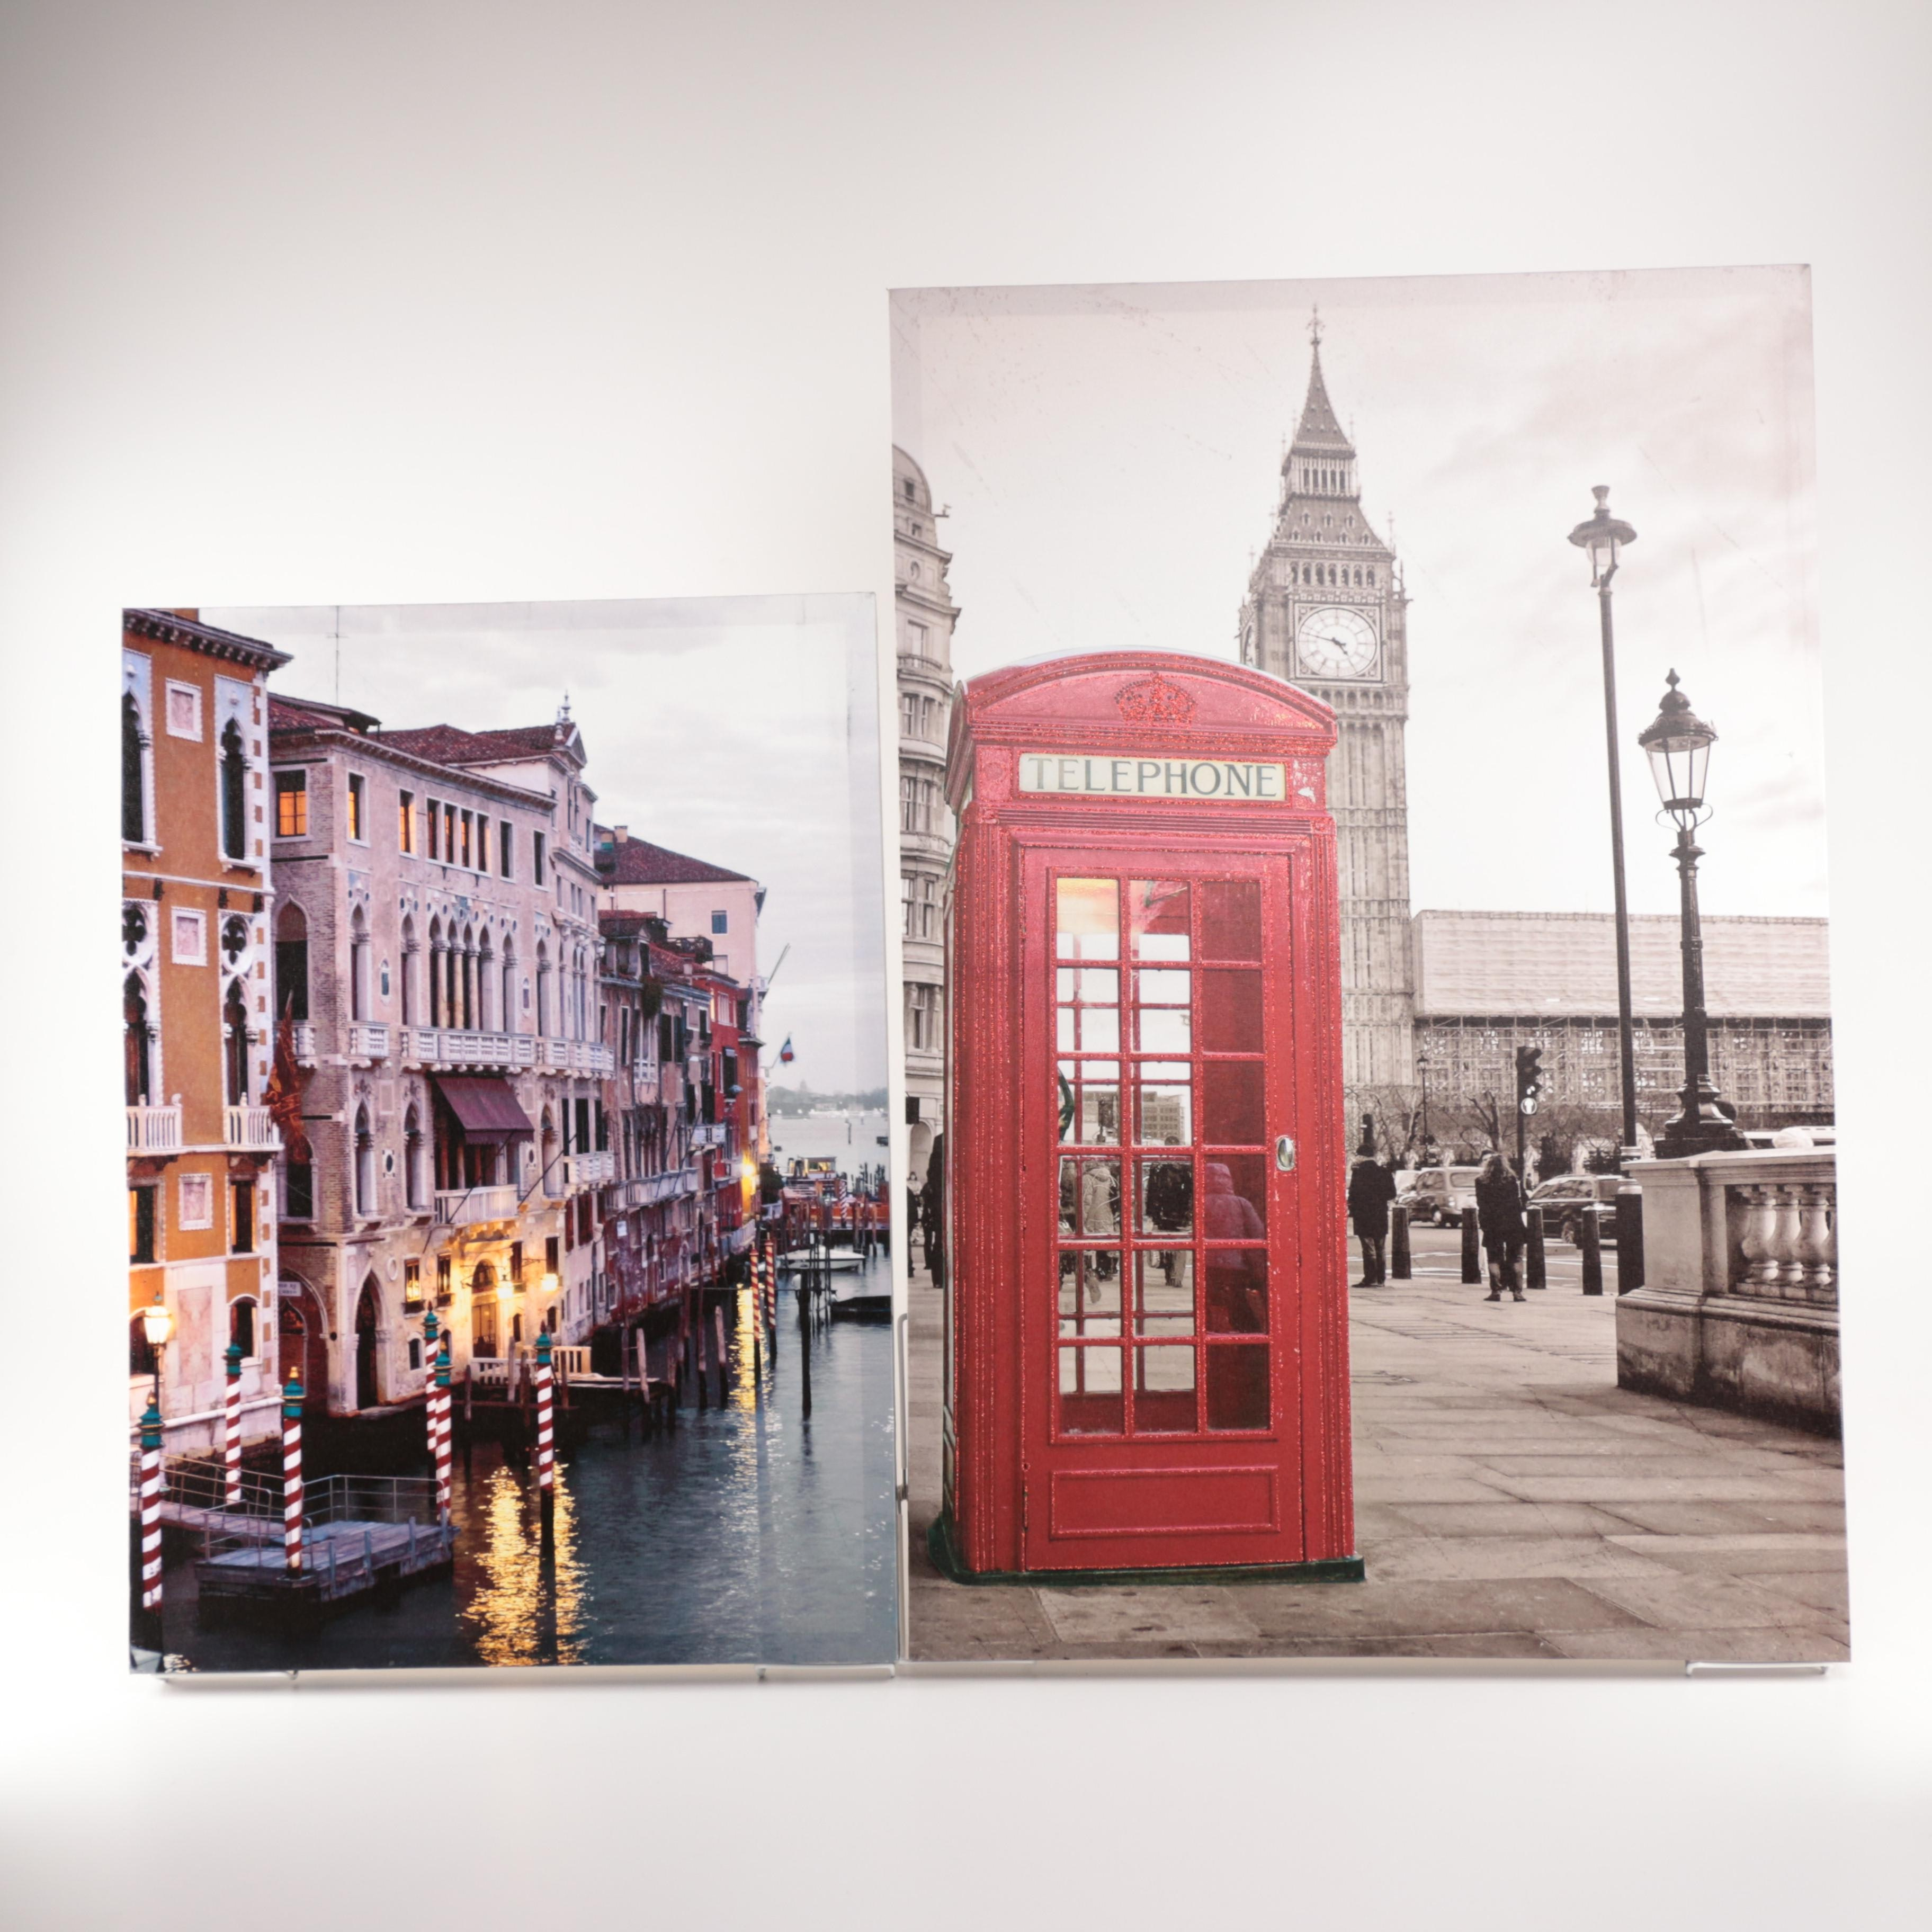 Giclée Prints After Photographic Cityscapes of London and Venice